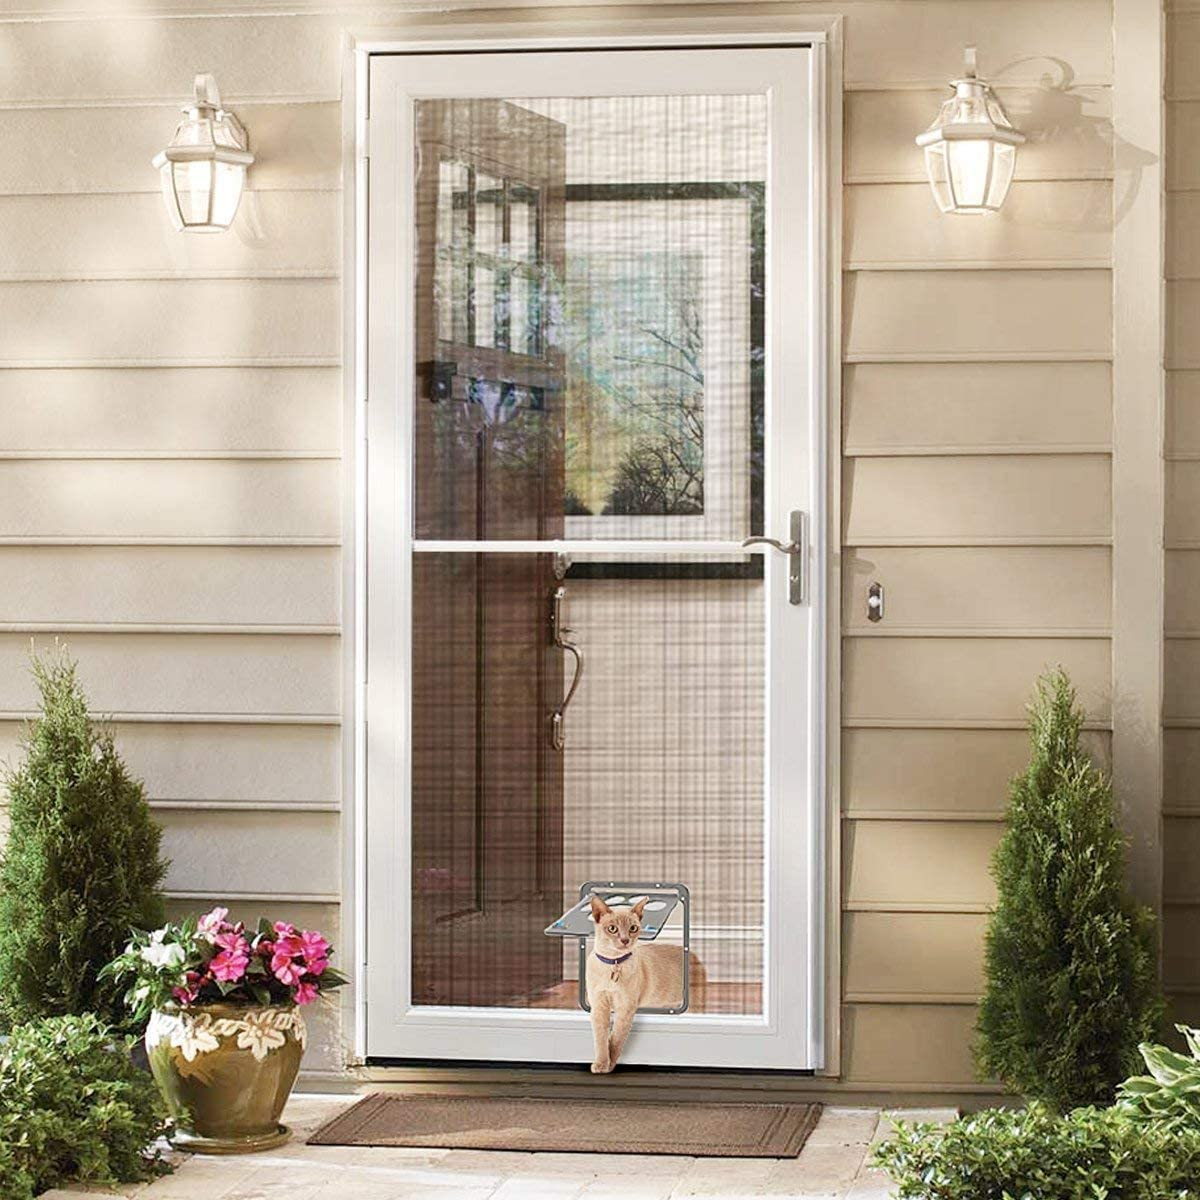 TOLBEST Pet Screen Door Dog Windows Screen Doggy Door Pets Channel for Cats and Dogs Small, Black